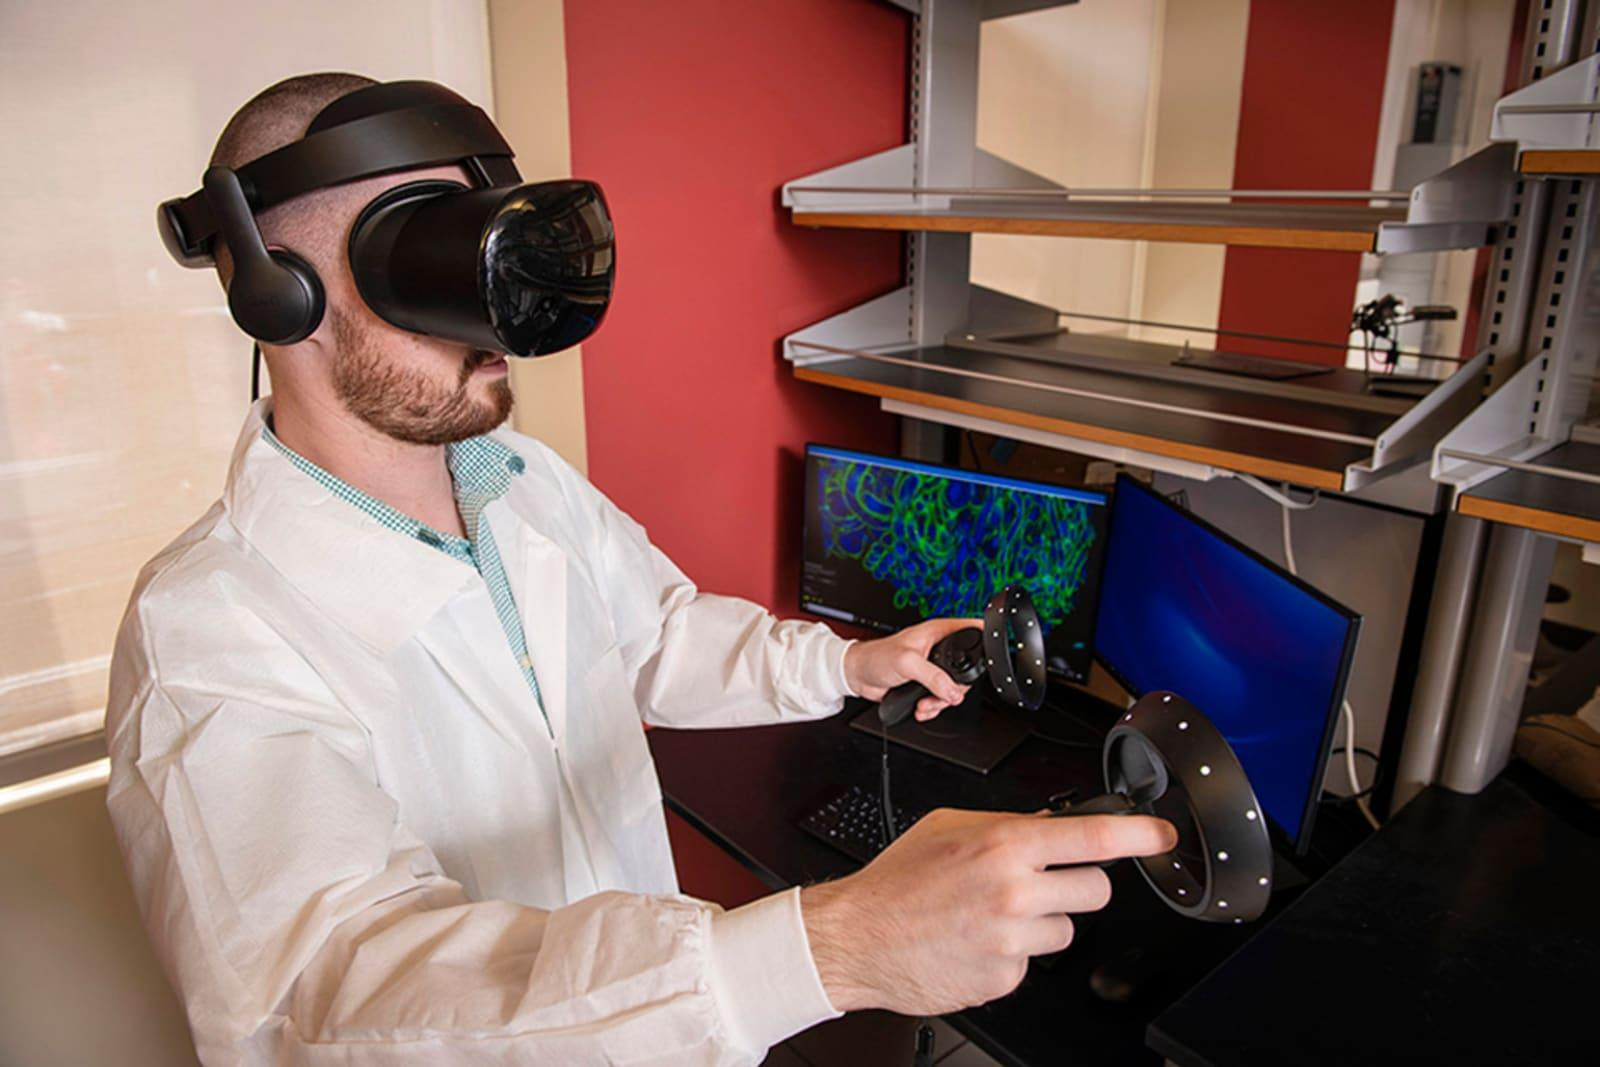 VR and microscopy help scientists see 'inside' diseases | Engadget